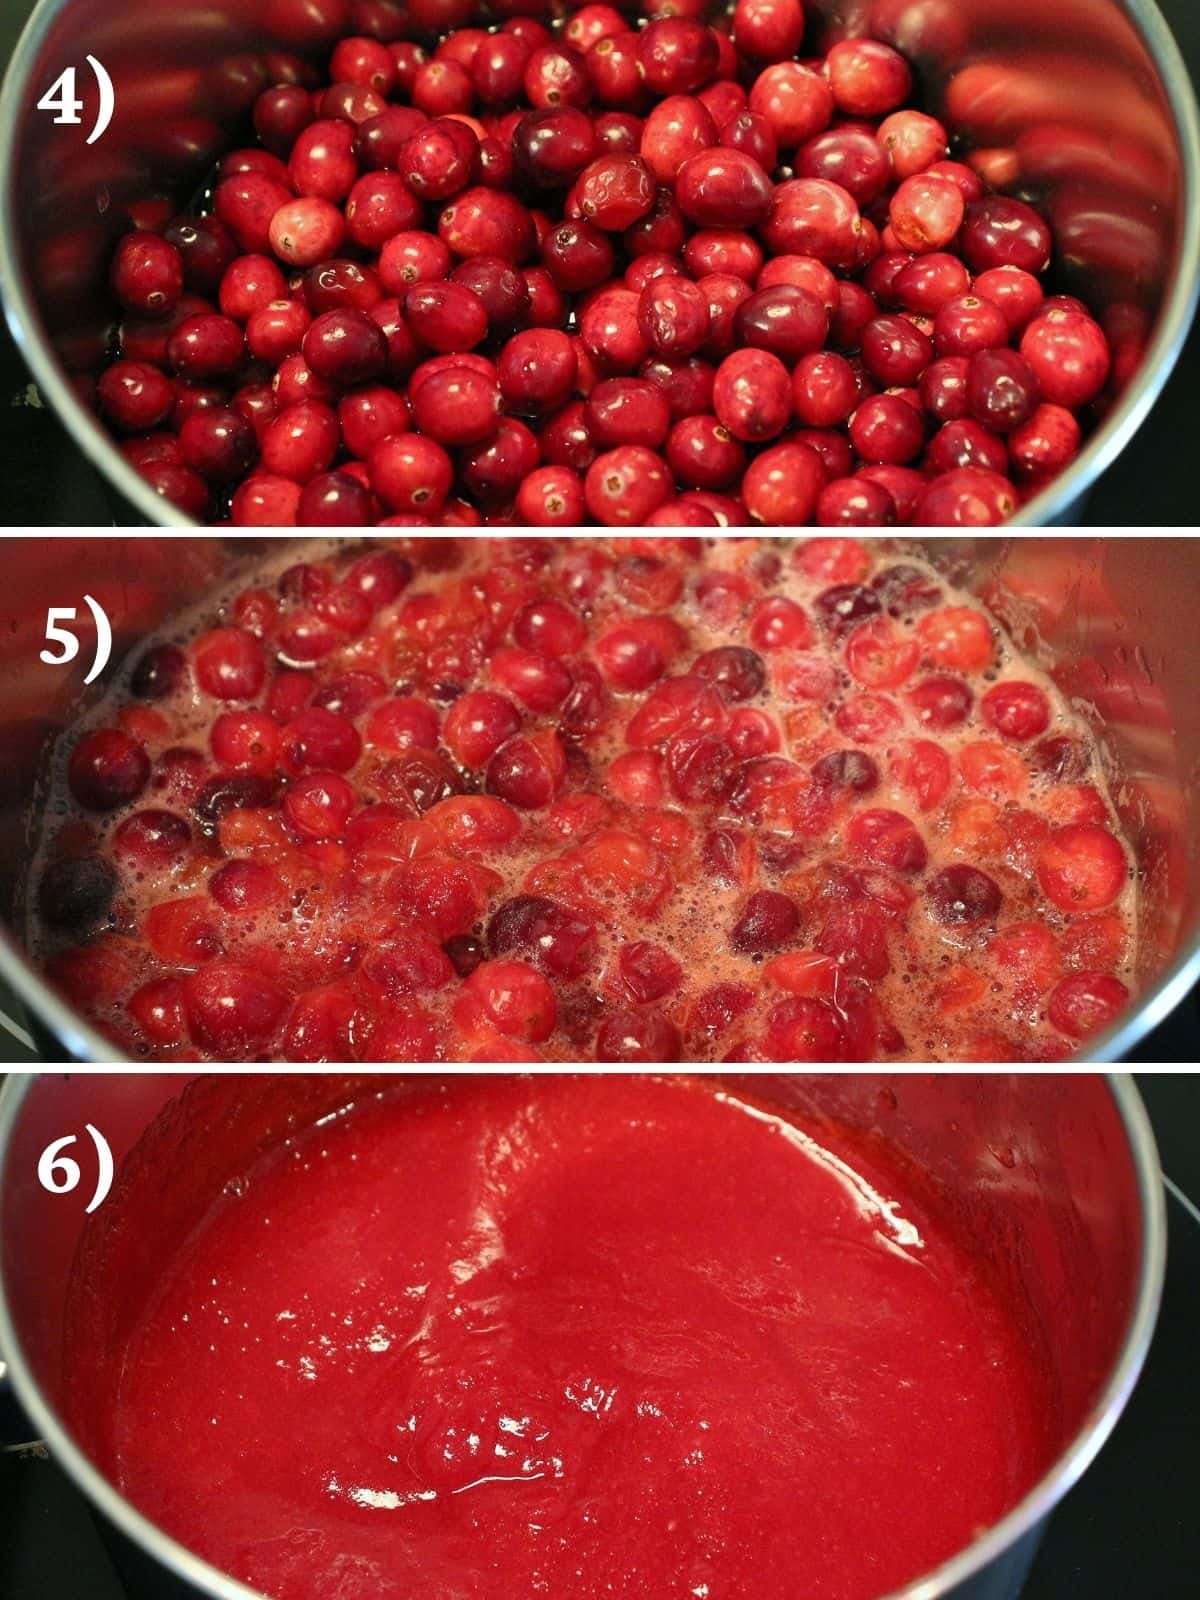 Step by step photos of cooking cranberries in a saucepan for cranberry curd.